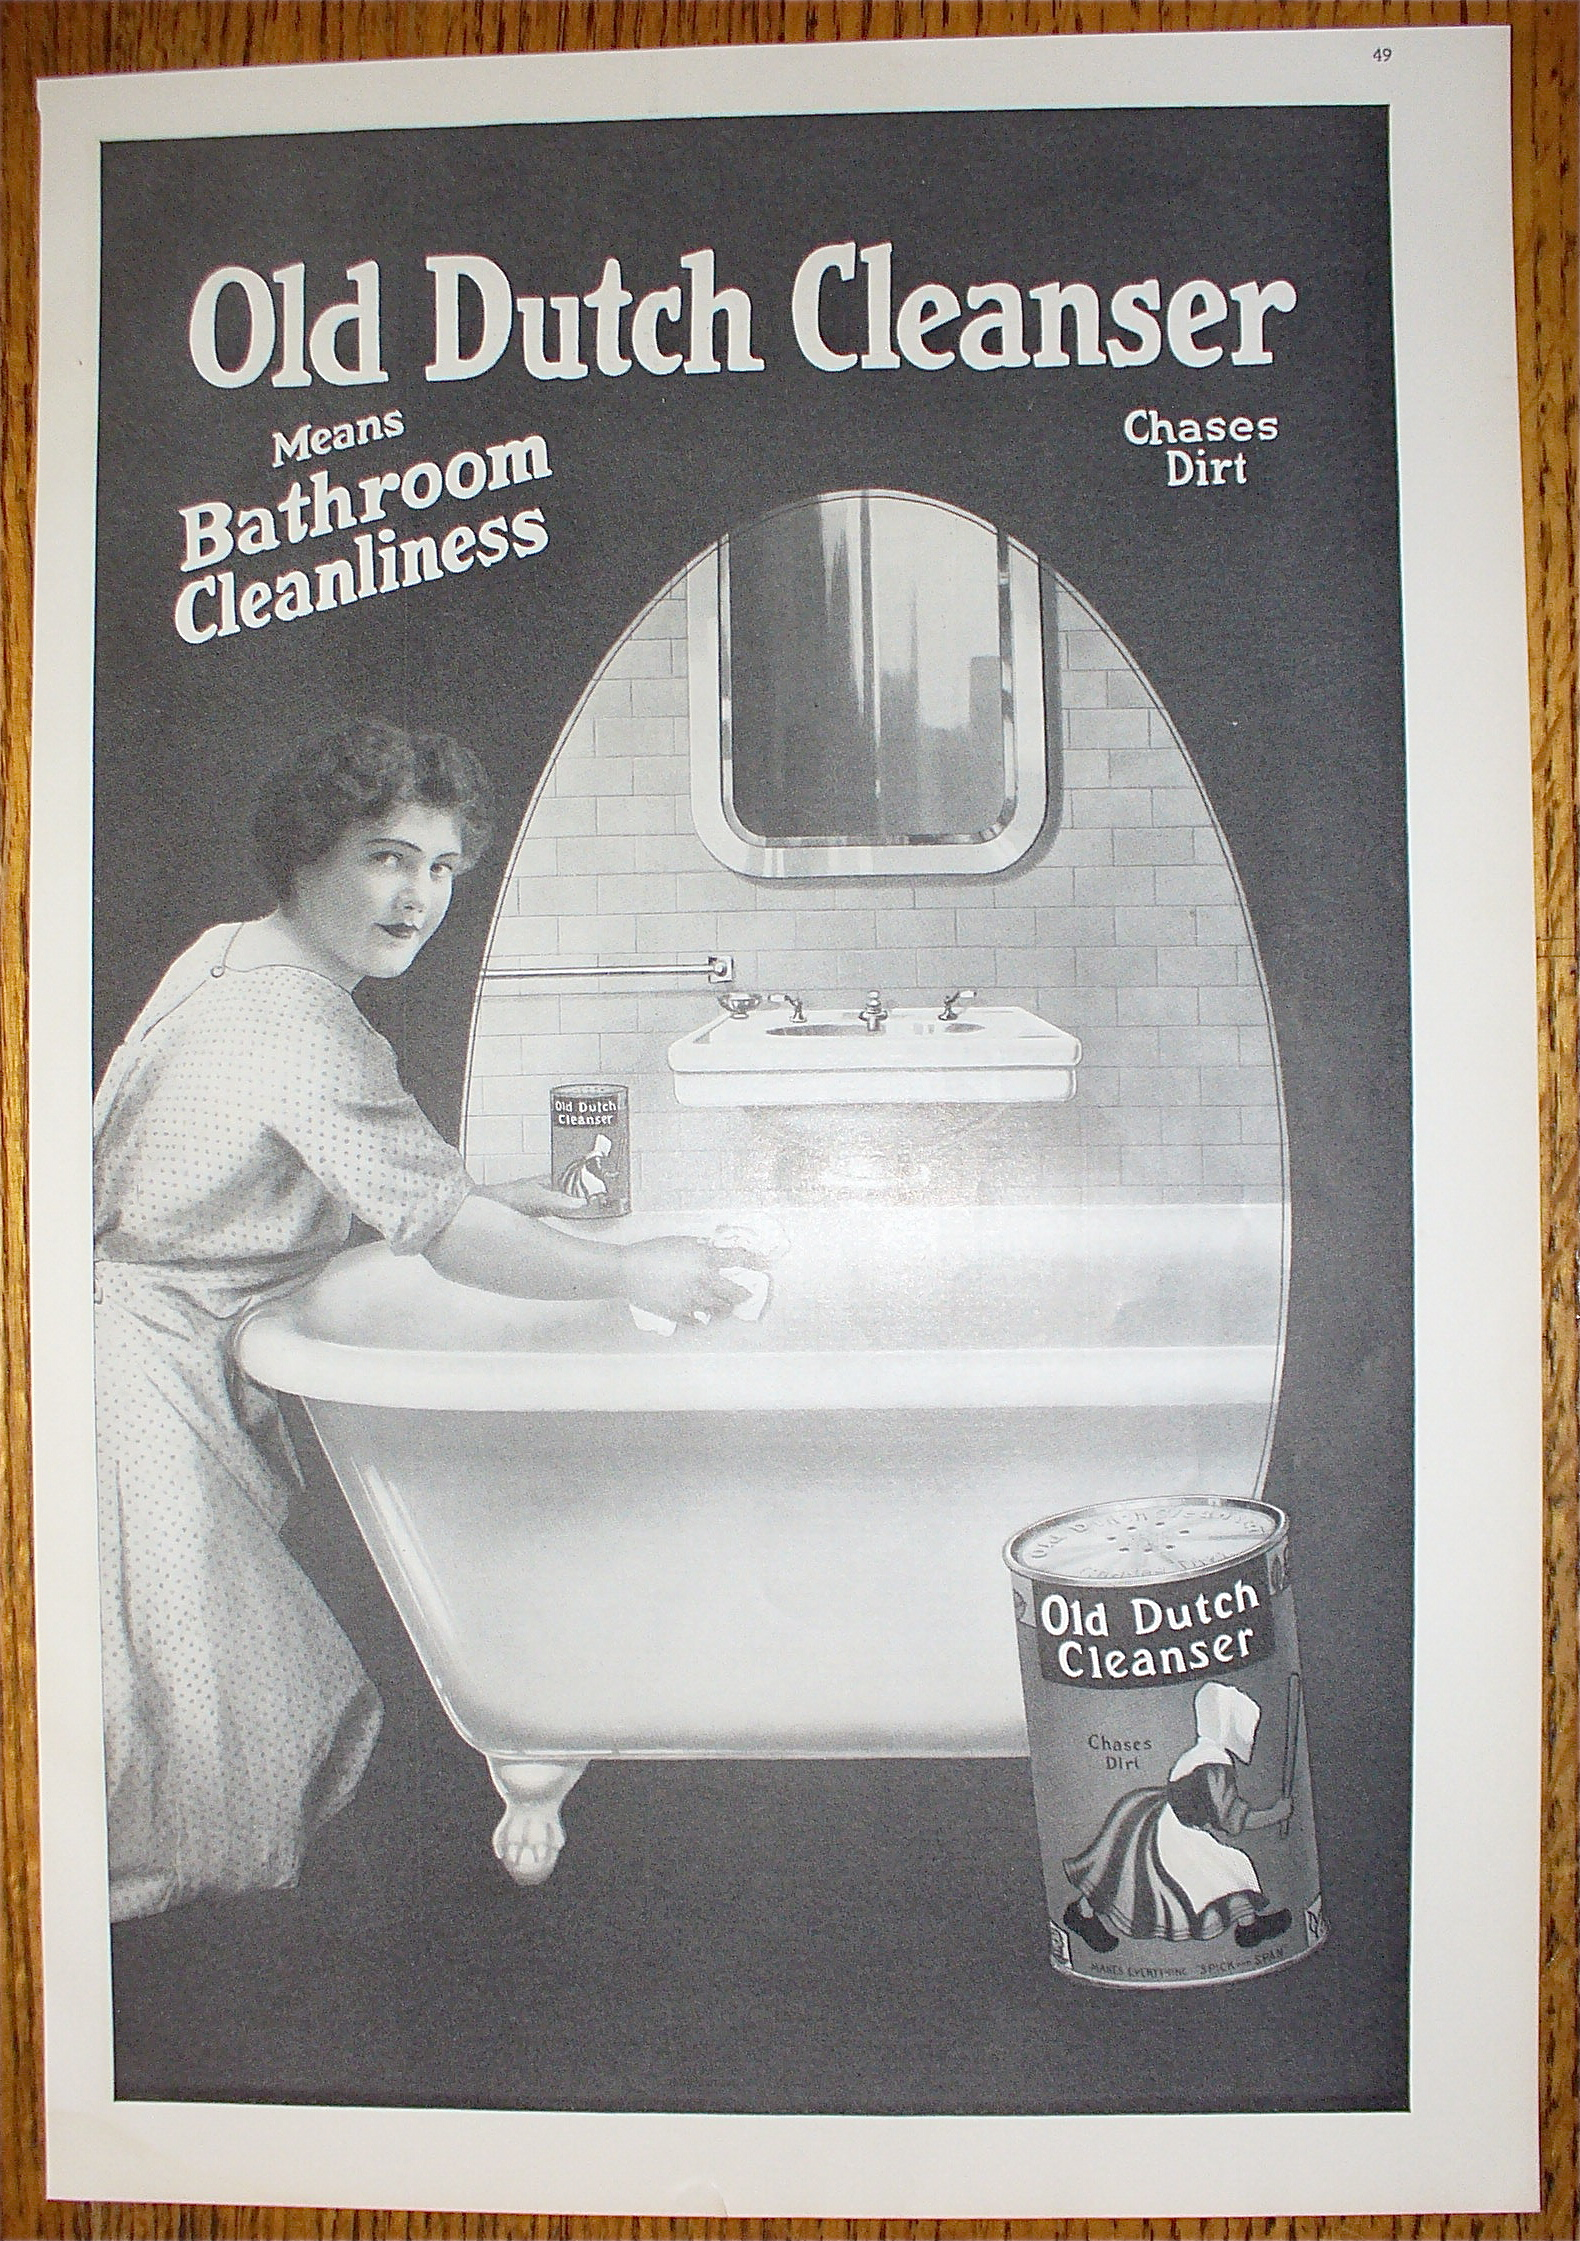 Vintage bathroom ads - 1914 Old Dutch Cleanser With Woman Cleaning Bathtub Soap Cleaners At Ads By Dee